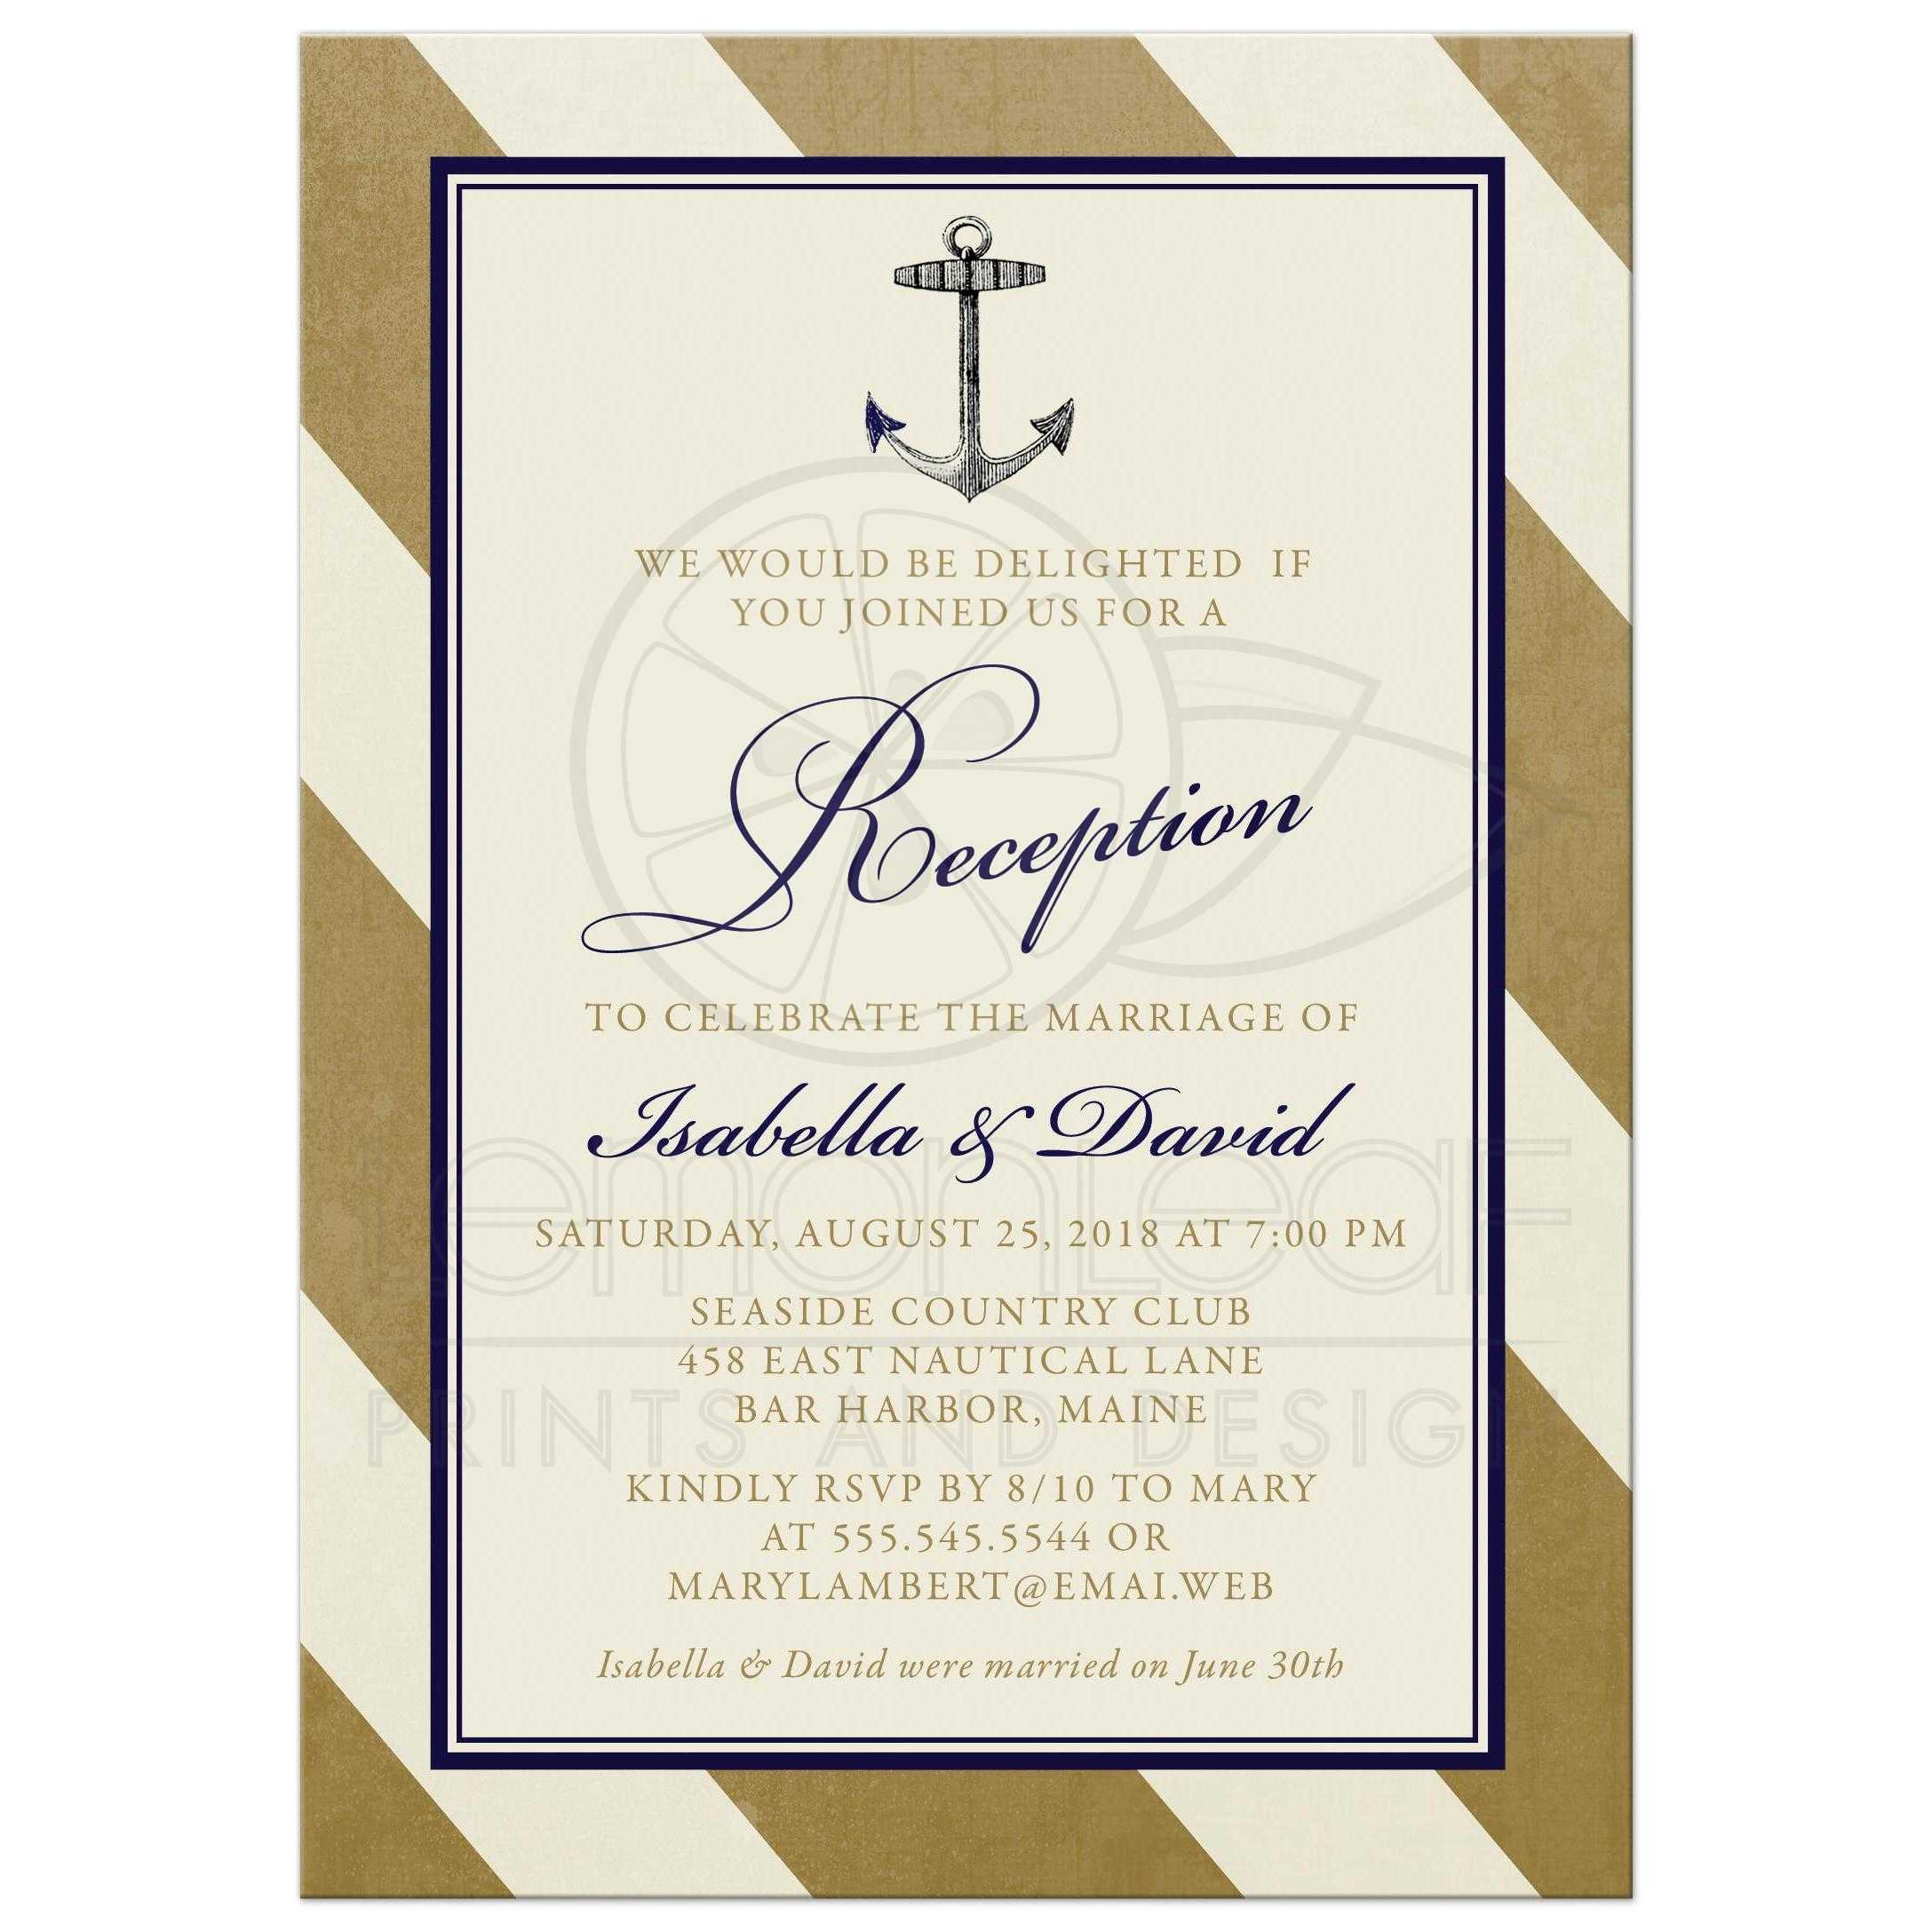 elegant nautical post wedding reception only invitations - Wedding Reception Only Invitations